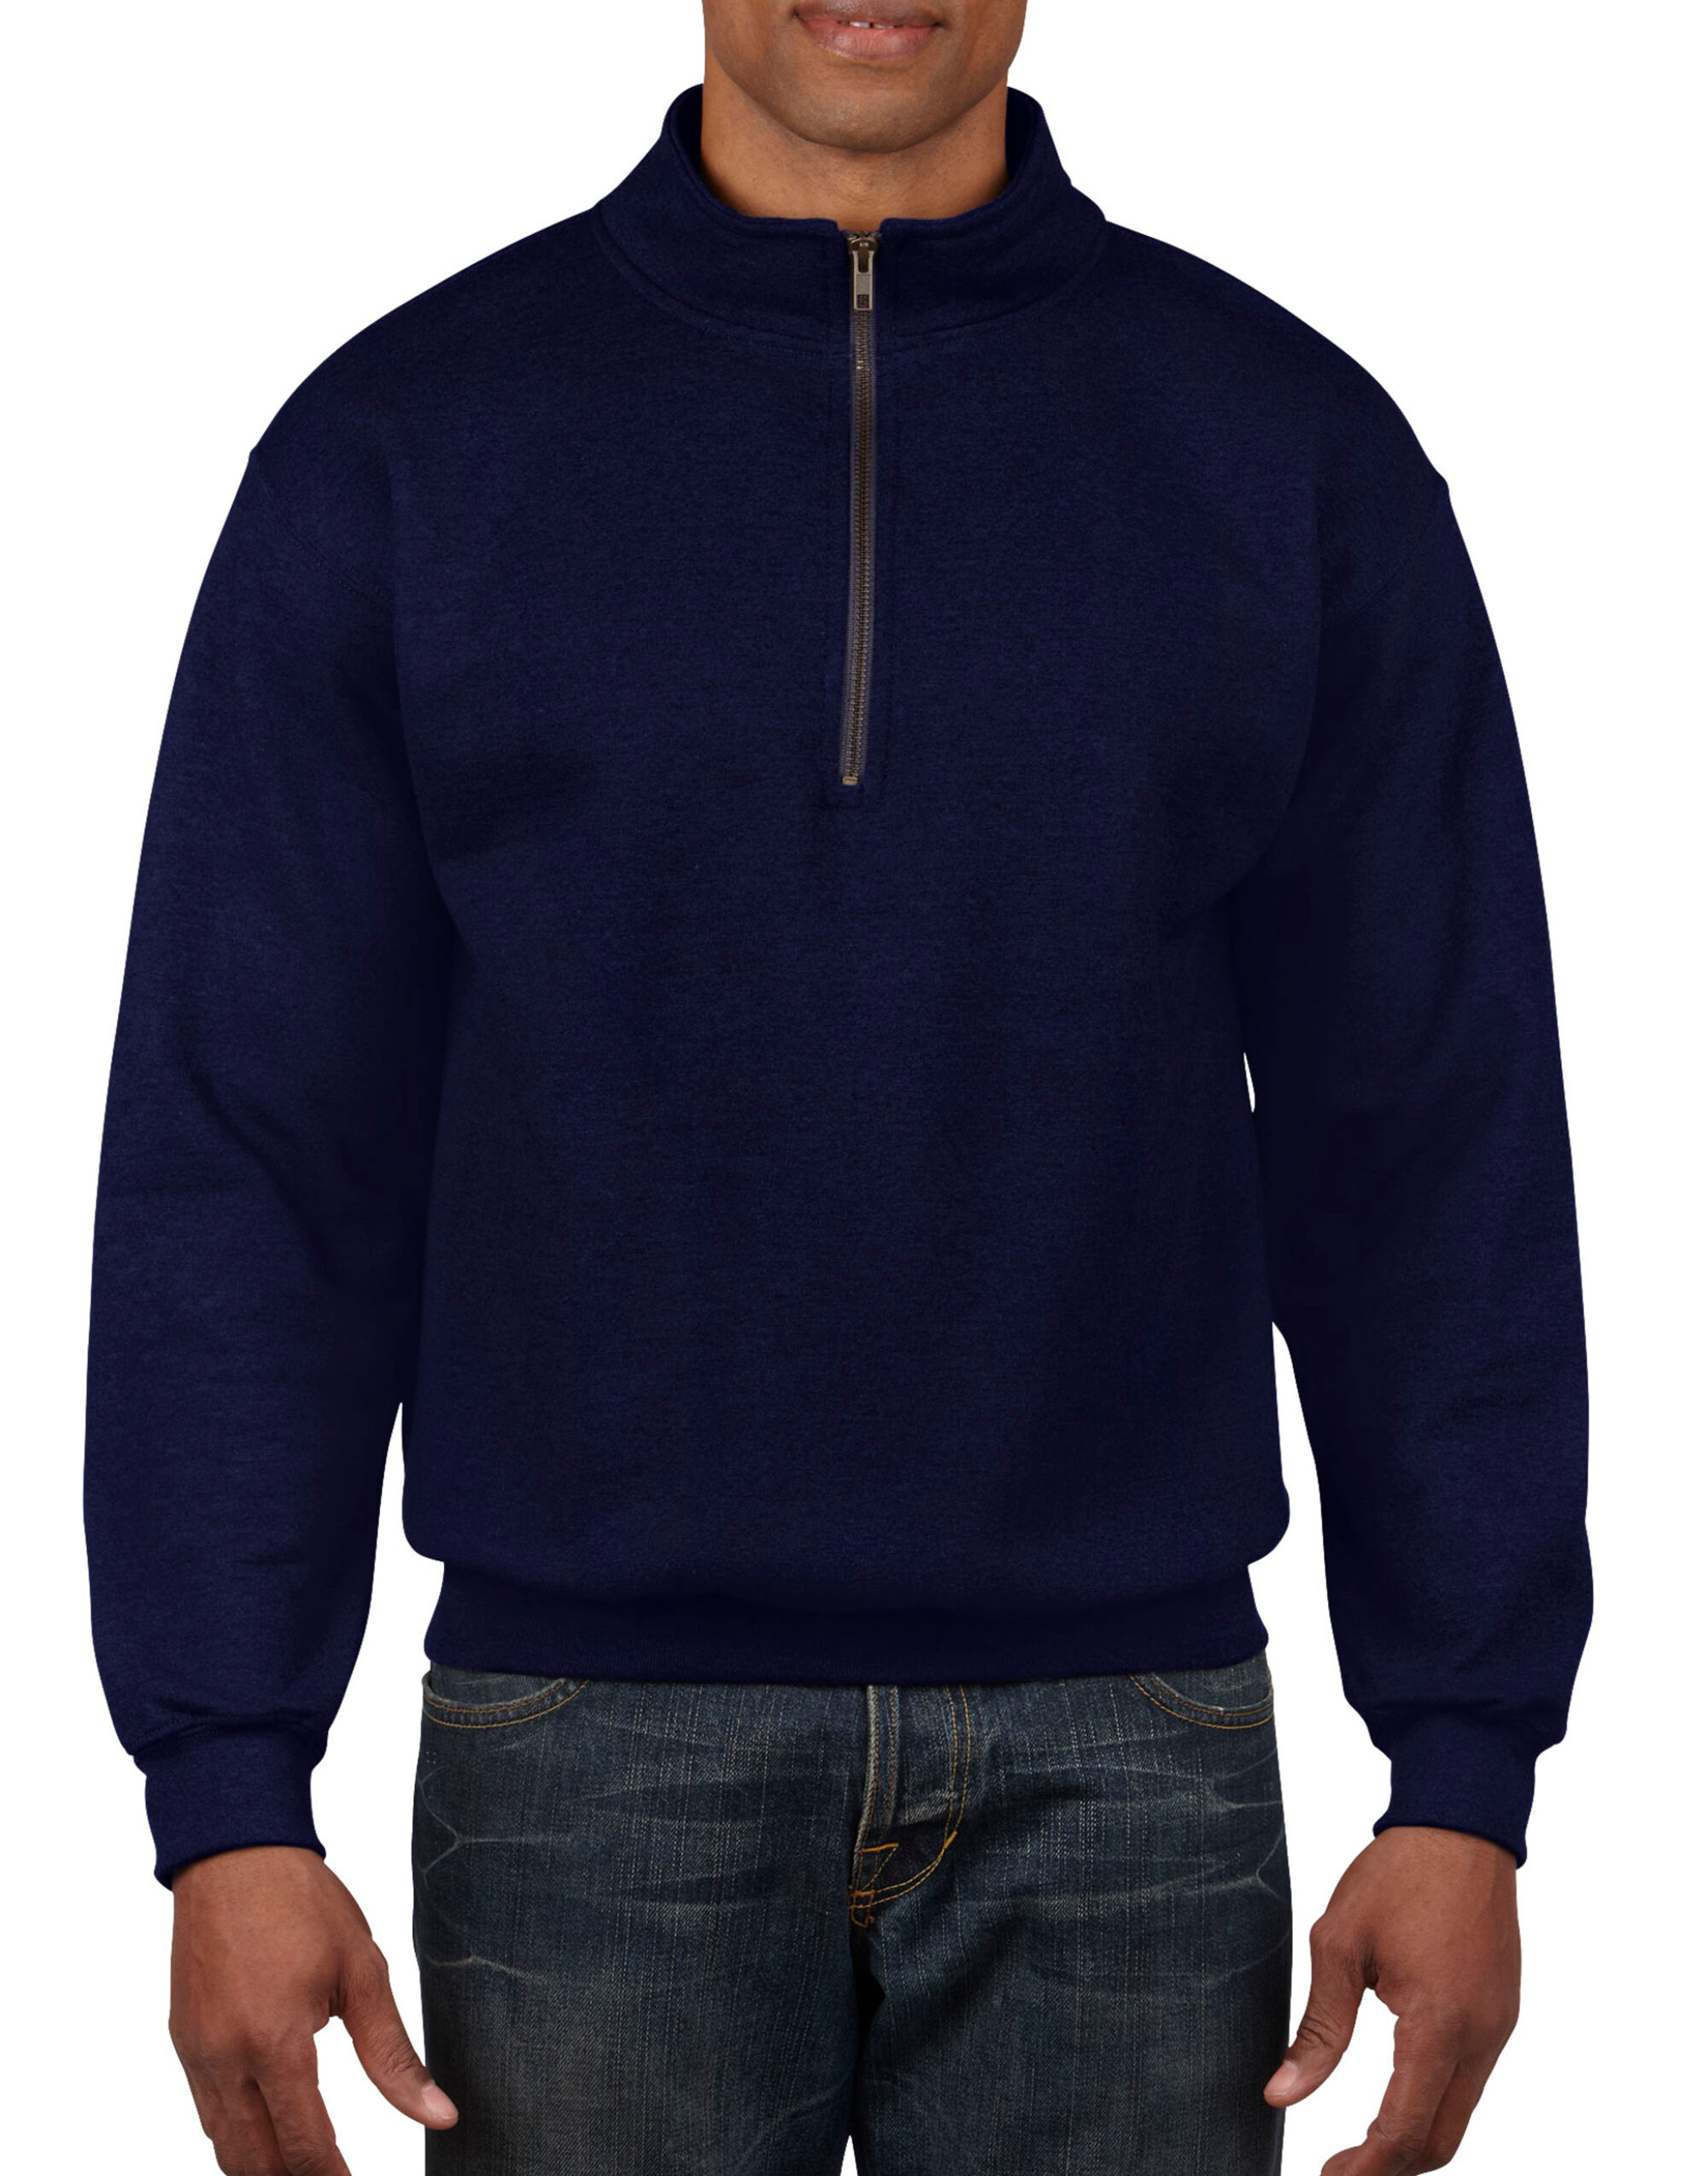 Adult Vintage 1/4 Zip Sweatshirt